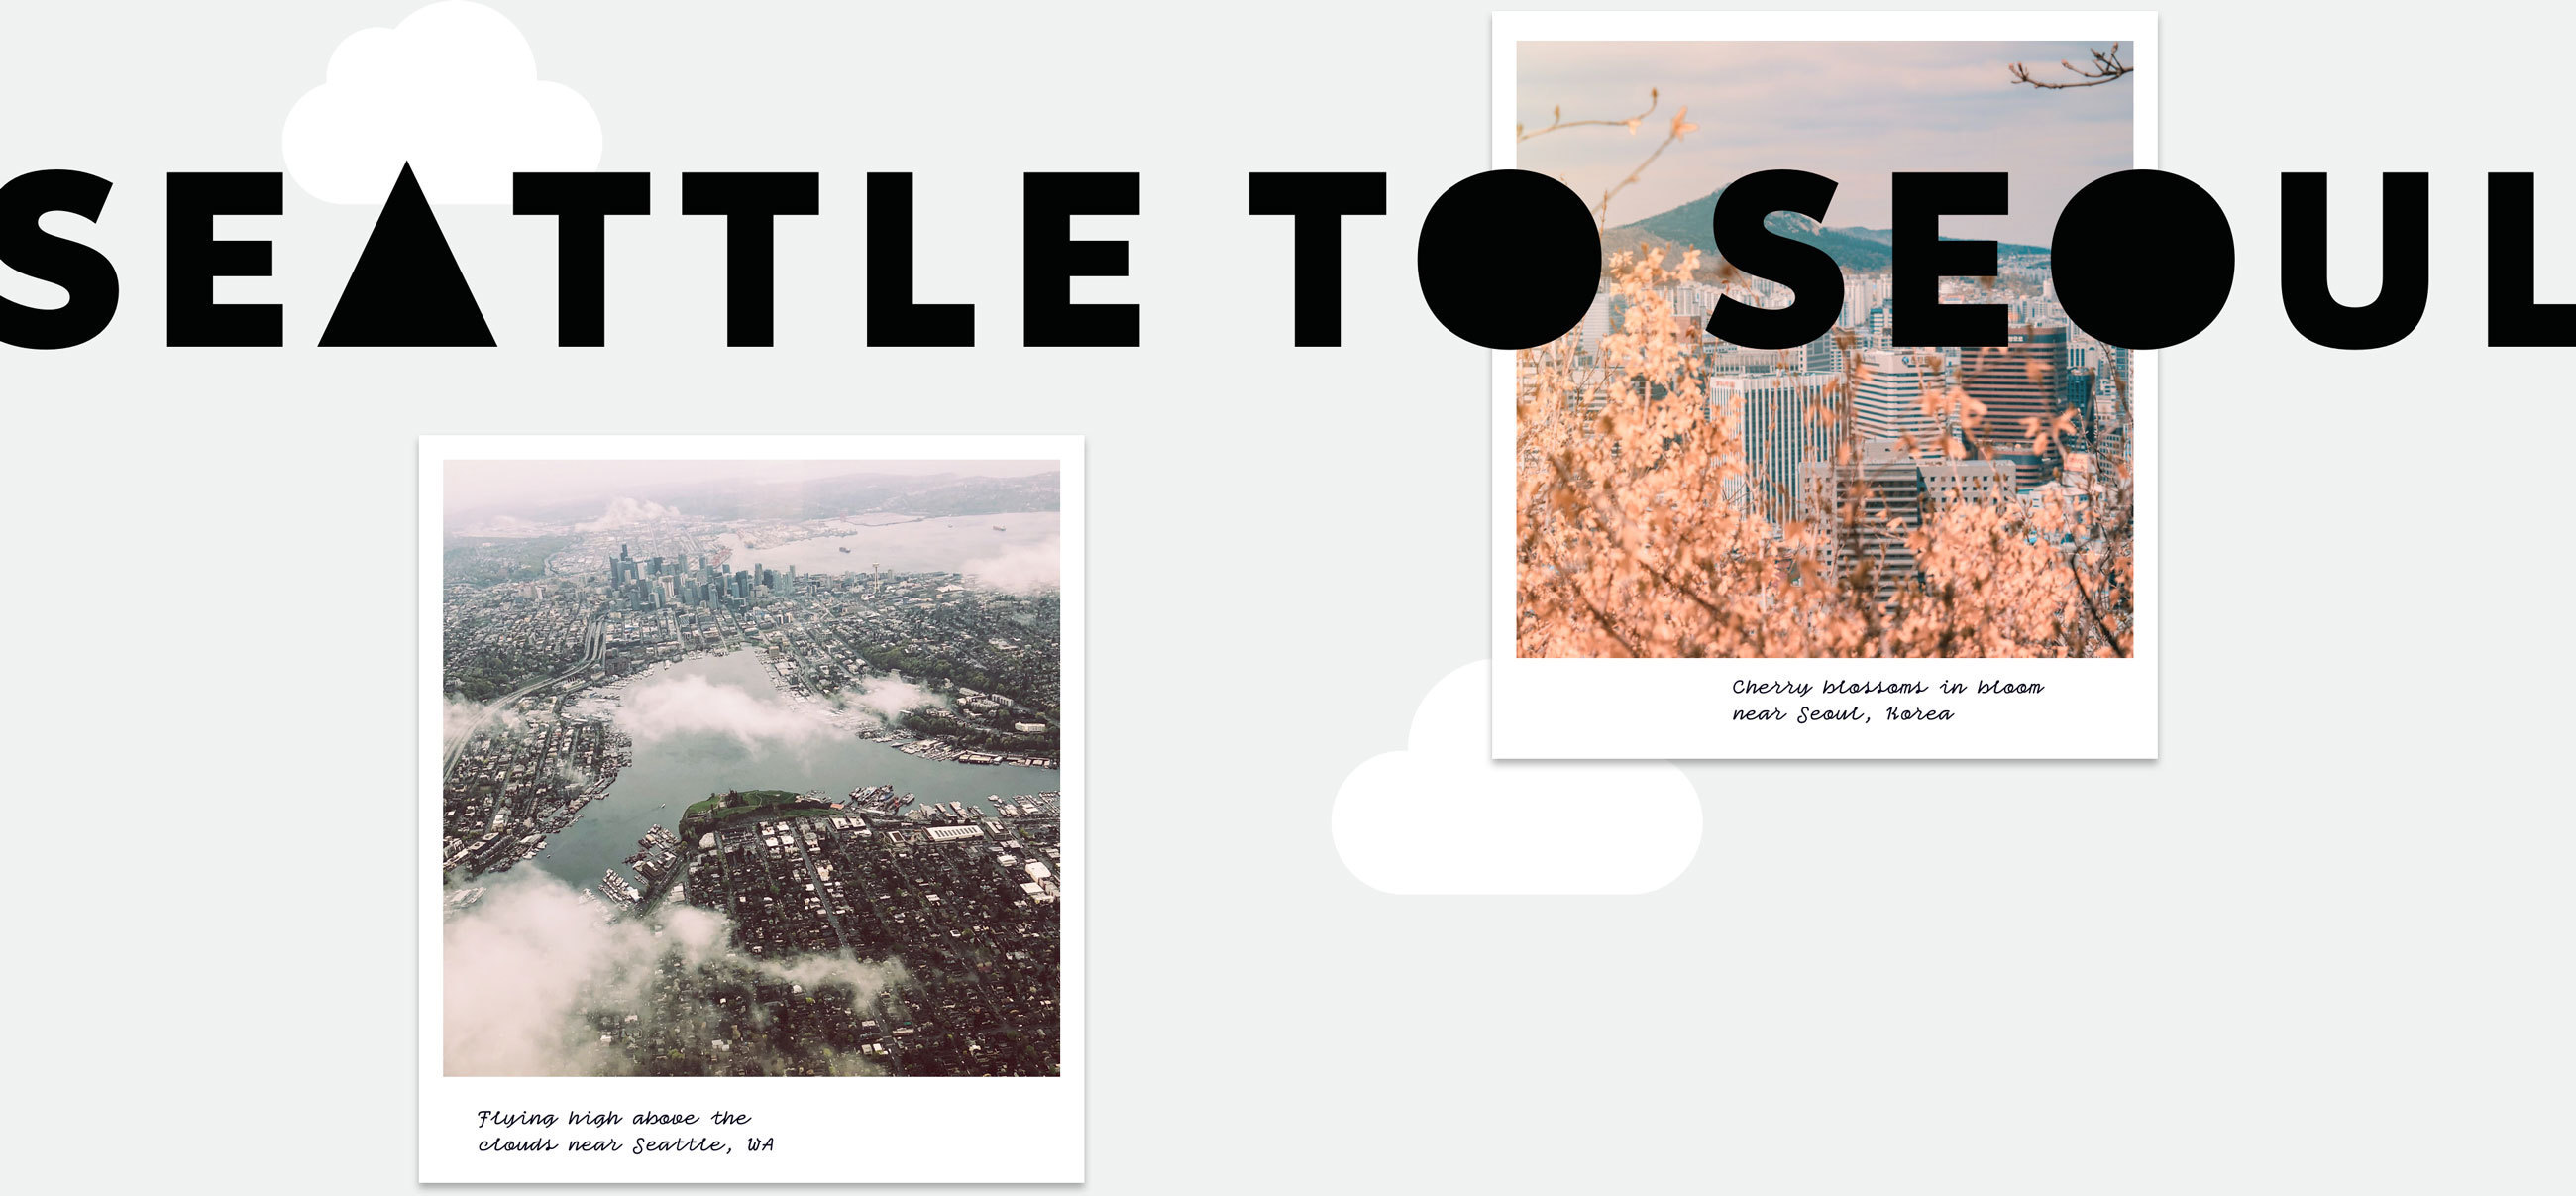 photo illustration with 2 polaroids of Seattle from the air and cherry blossoms in bloom.